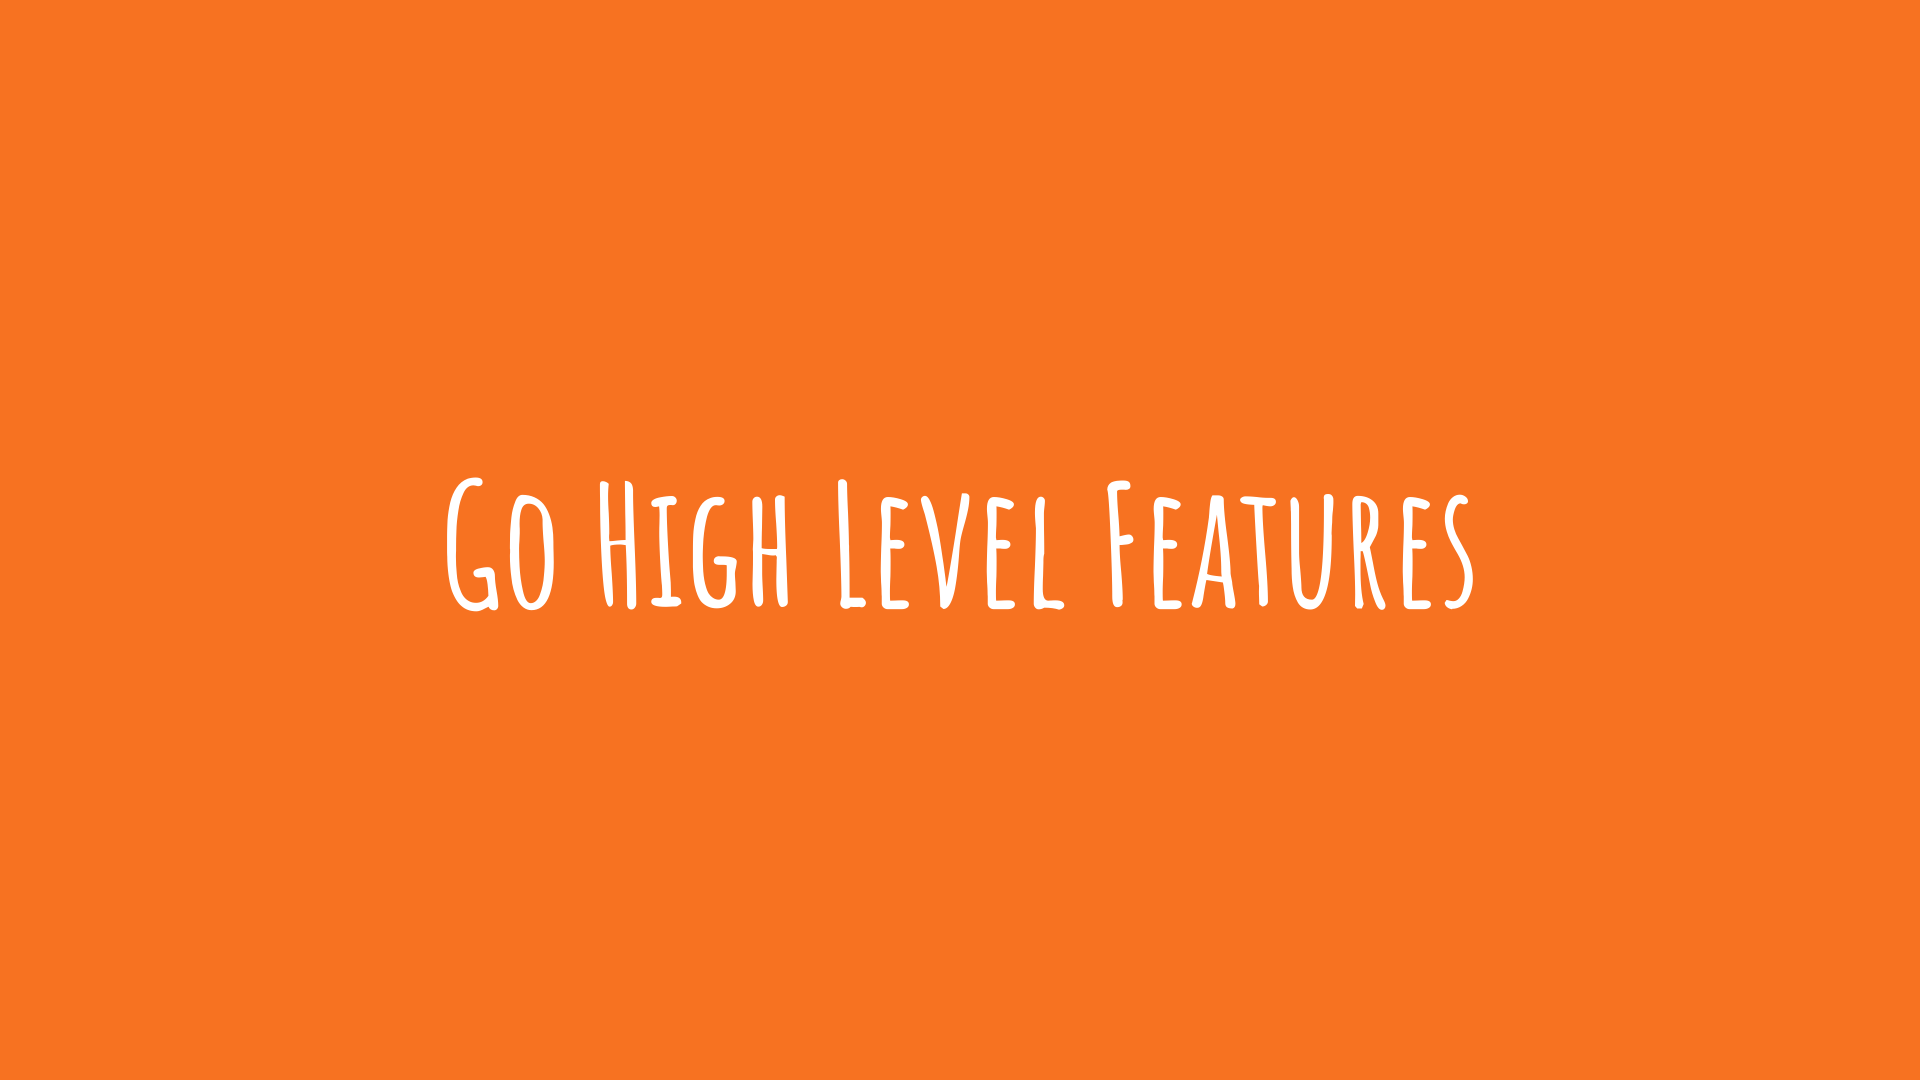 go high level features